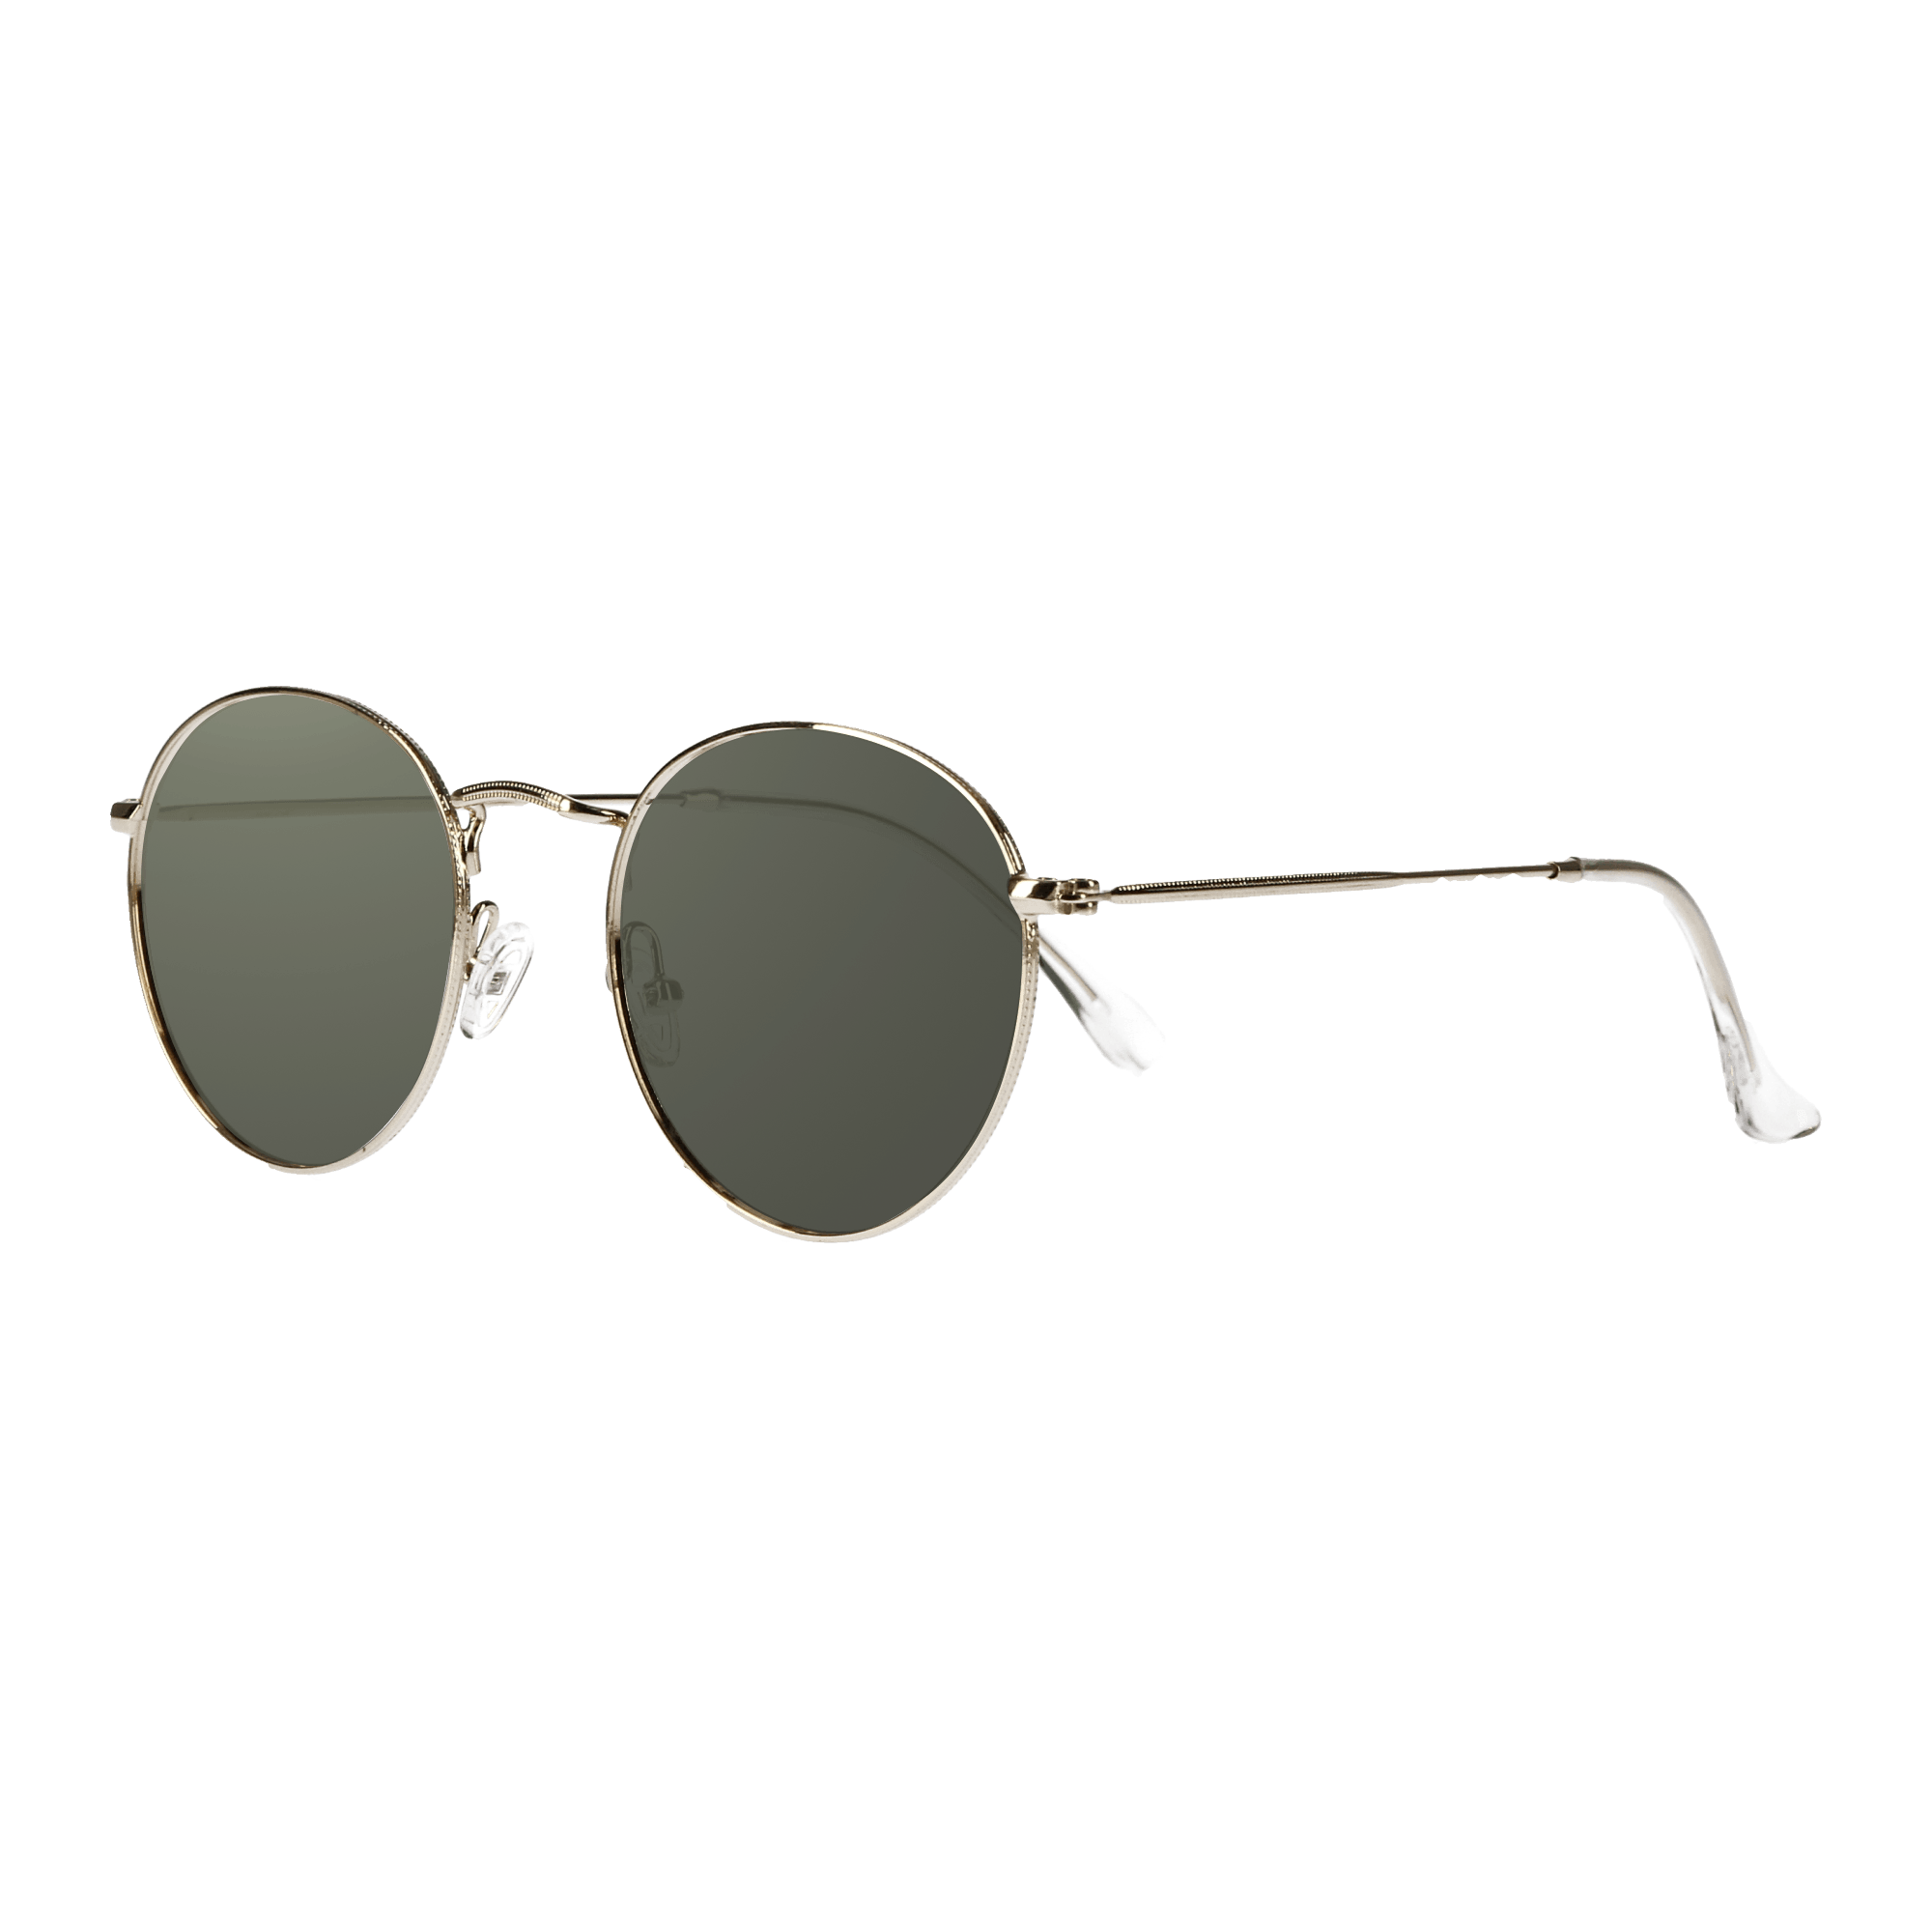 SPENCER - GOLD SUNGLASSES SAINT REETS